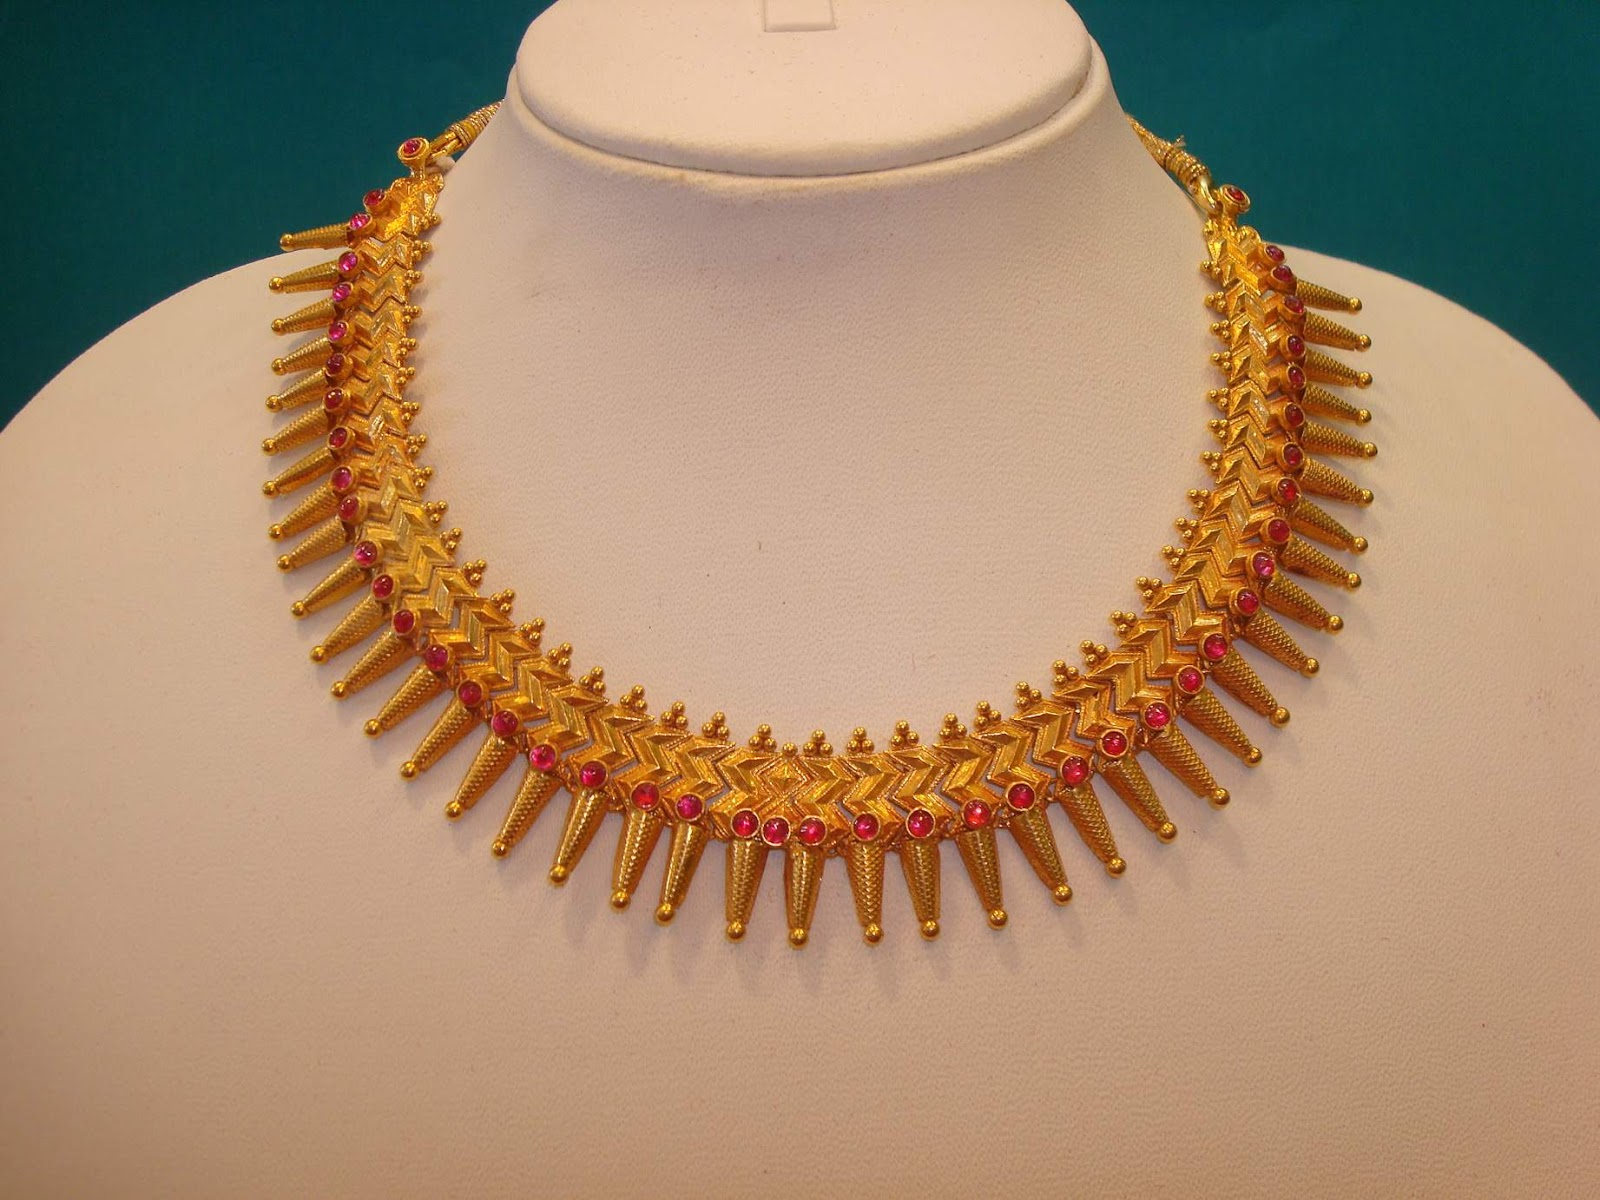 Maharashtrian Wedding Bridal Jewelry ~ Jewellery India